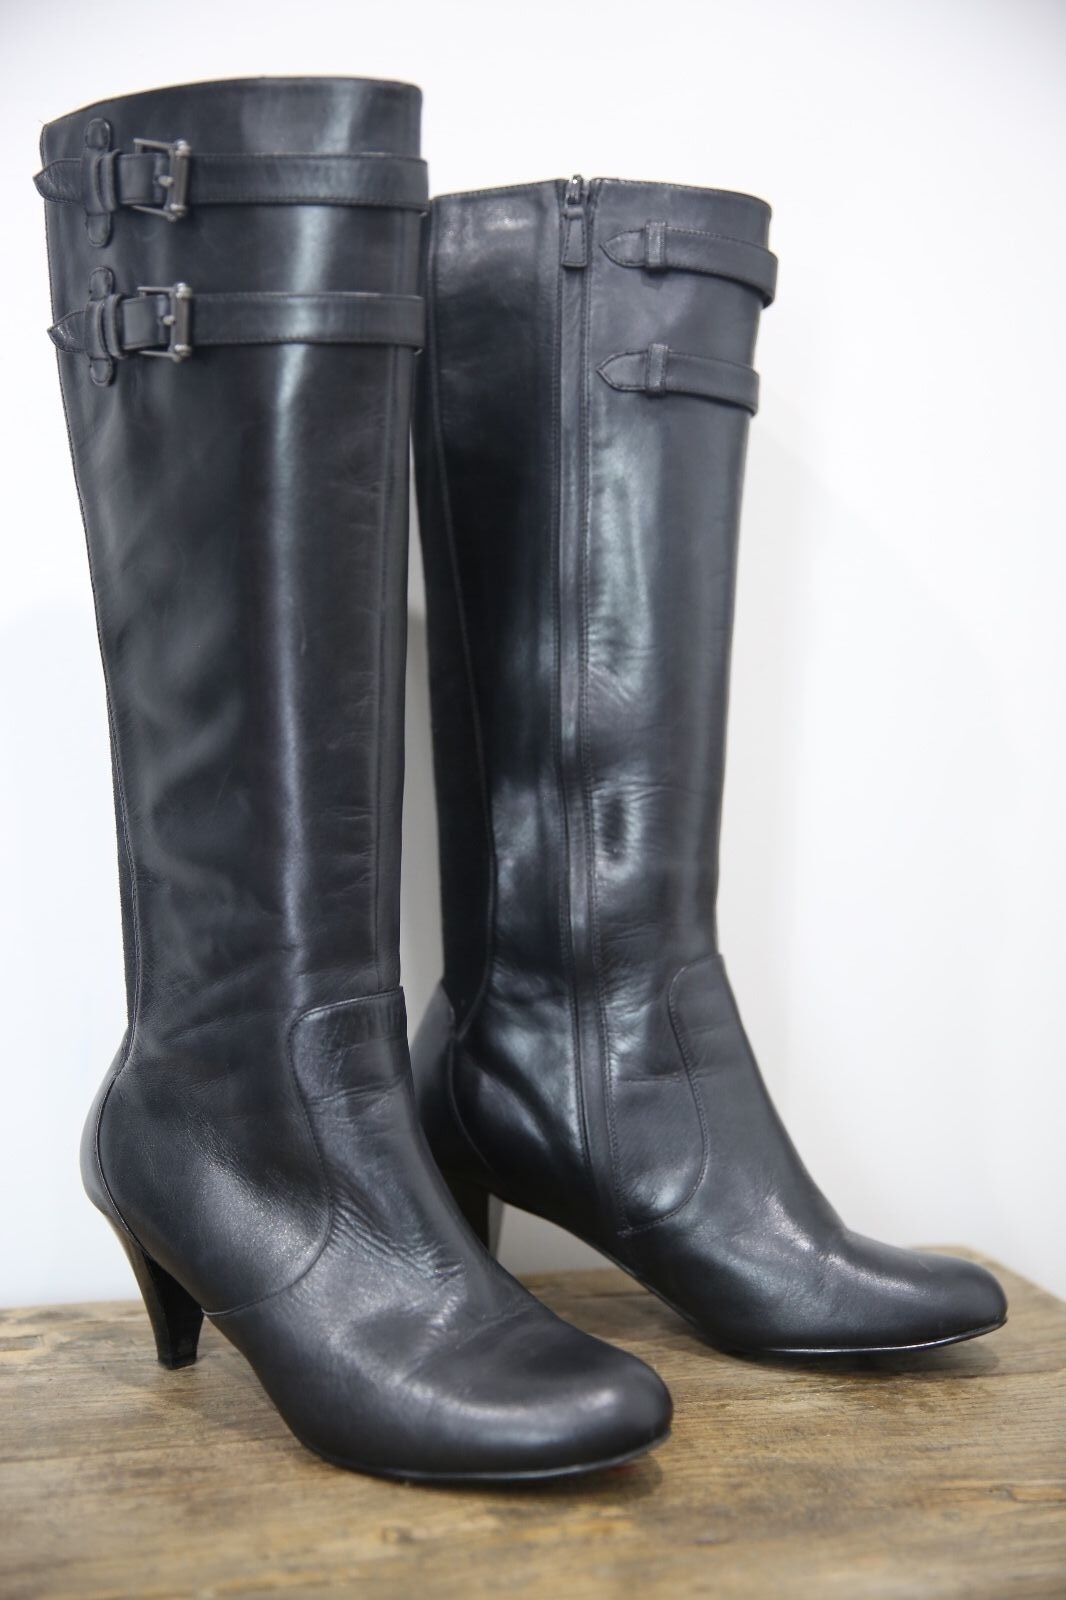 Cole Haan Colehaan Women's Black Leather Knee High Boots Strap Buckle Size 8.5 B